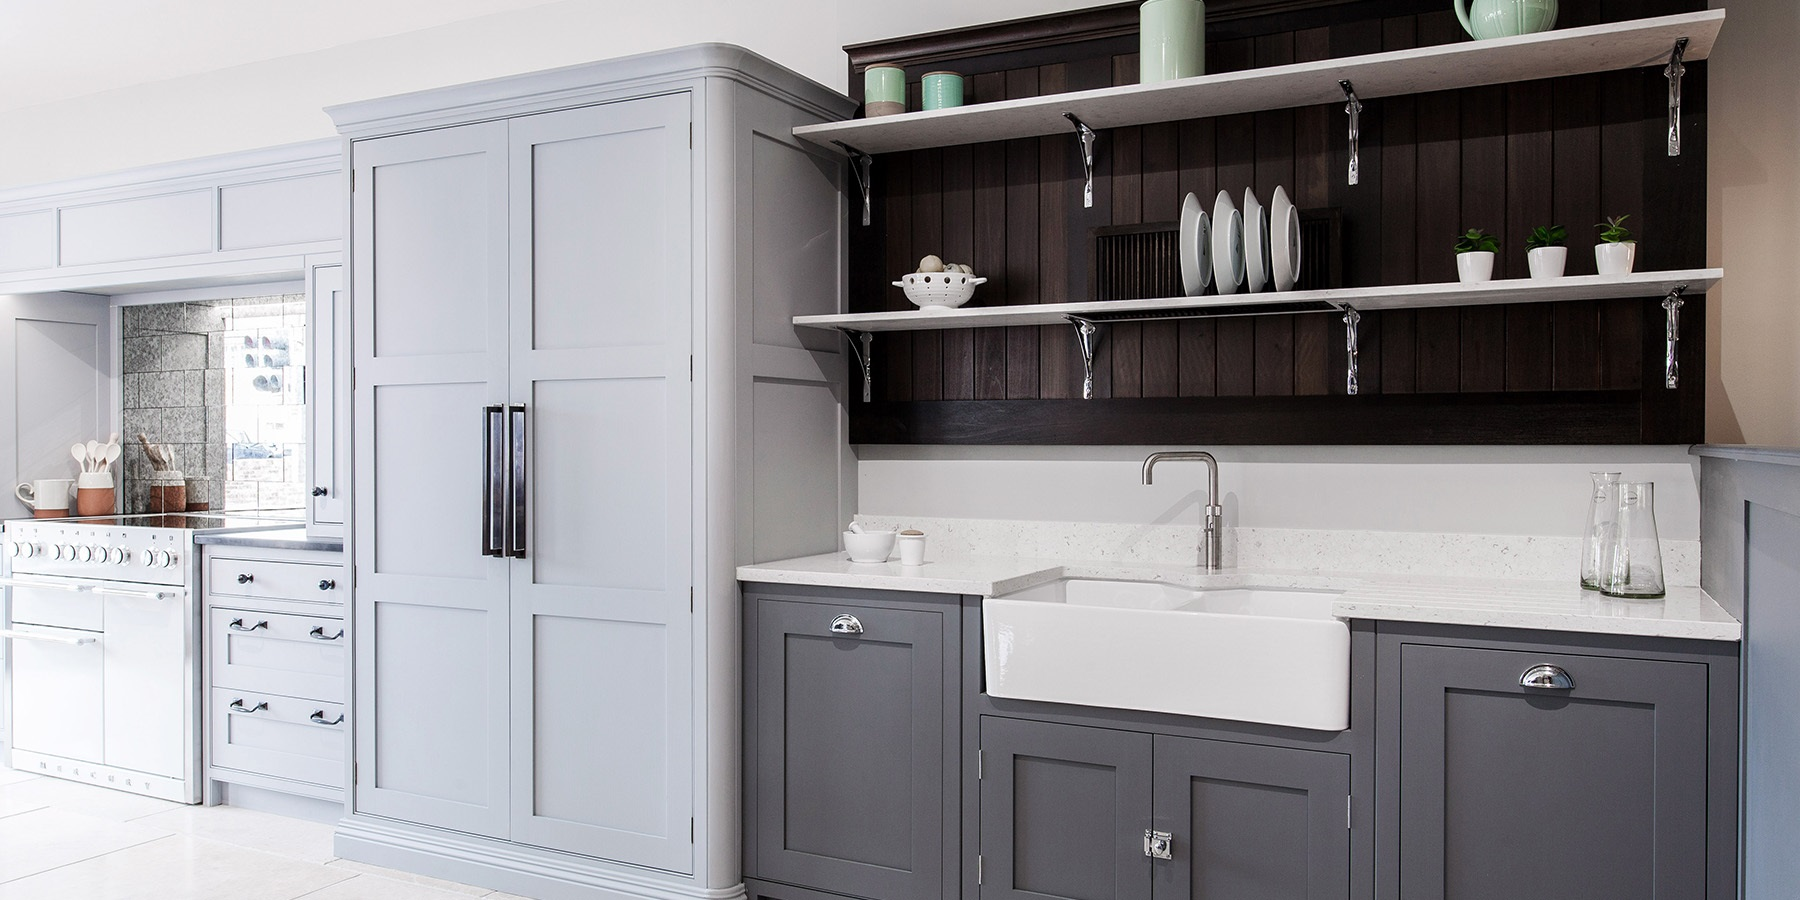 Burlanes Interiors Chelmsford Showroom - Burlanes Chelmsford'S bespoke Wellsdown kitchen with large freestanding larder and integrated refrigerator.